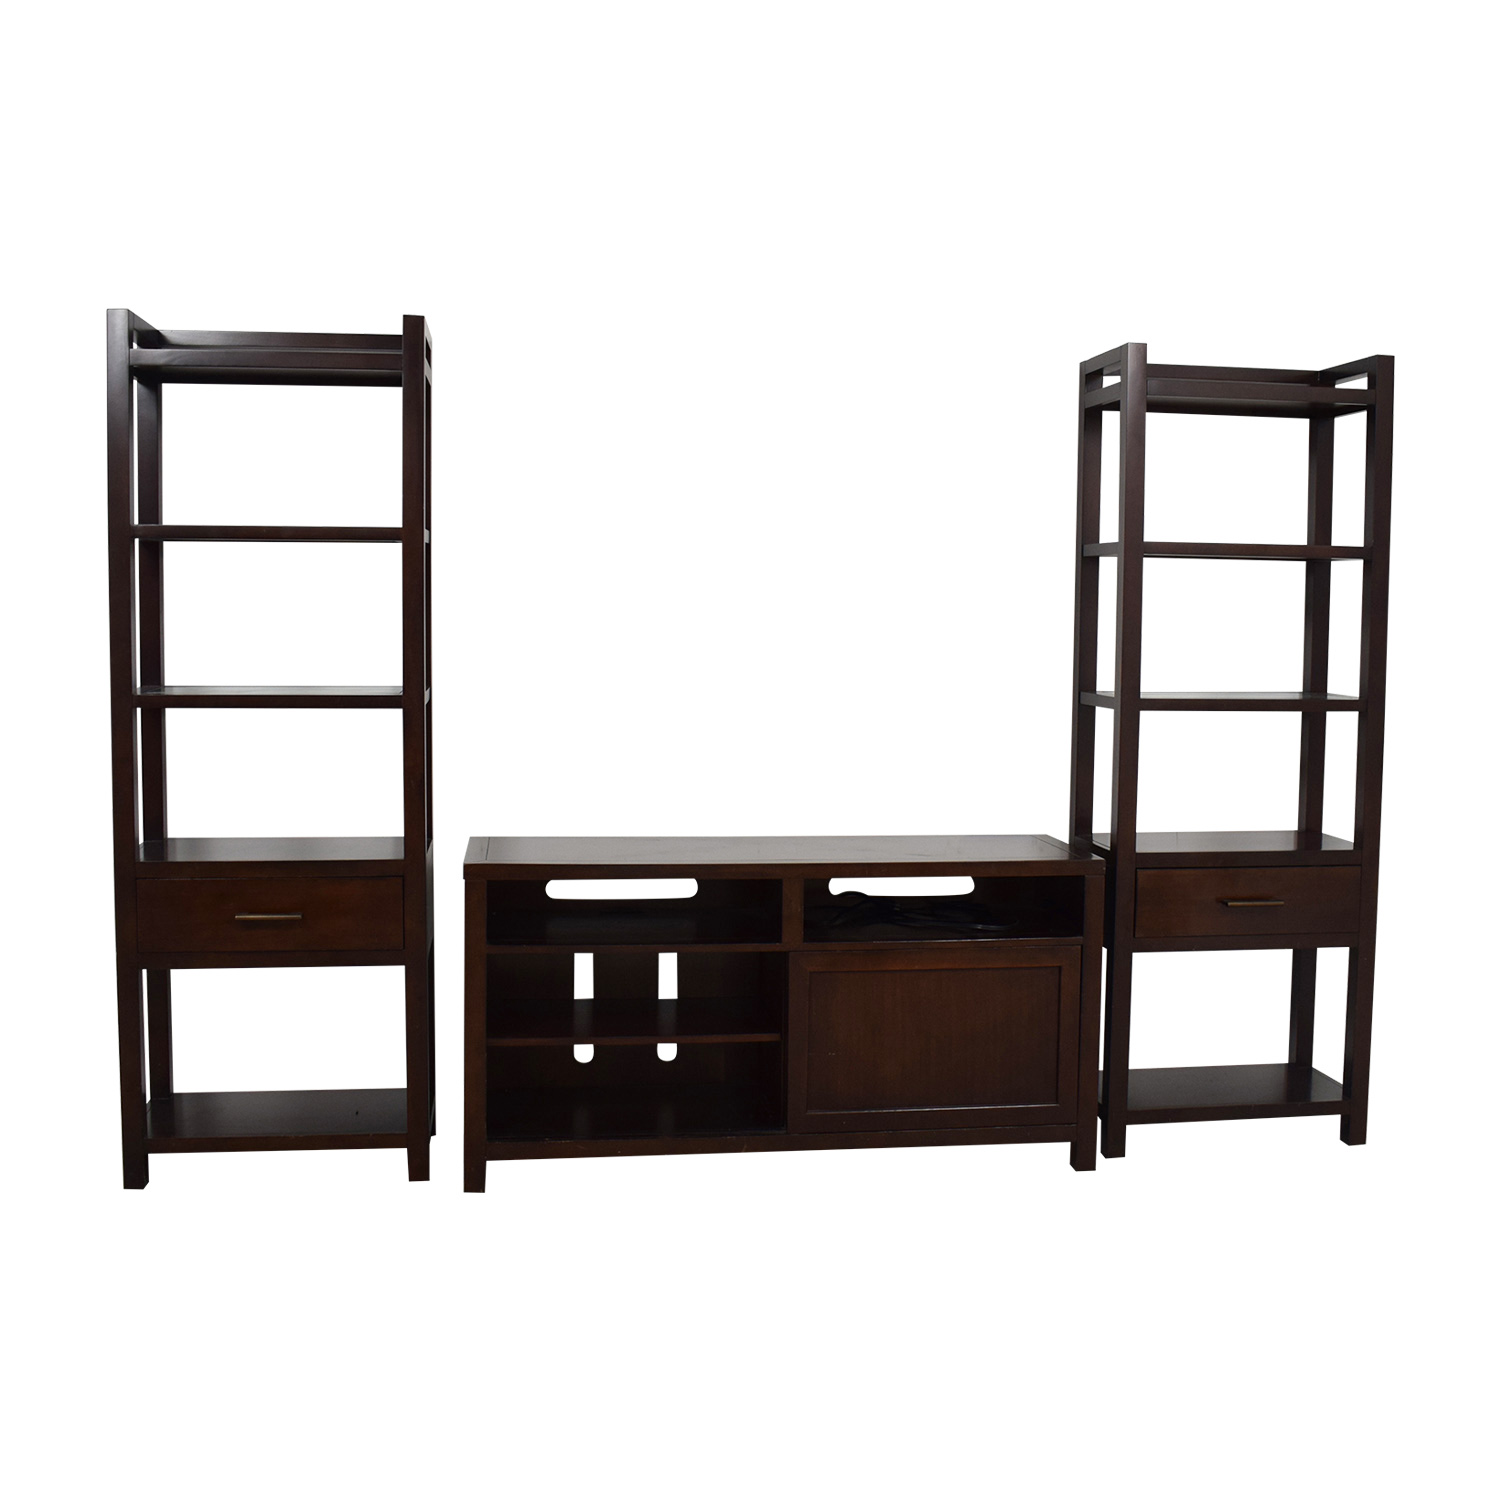 Crate & Barrel Crate & Barrel Media Center with Bookshelves price